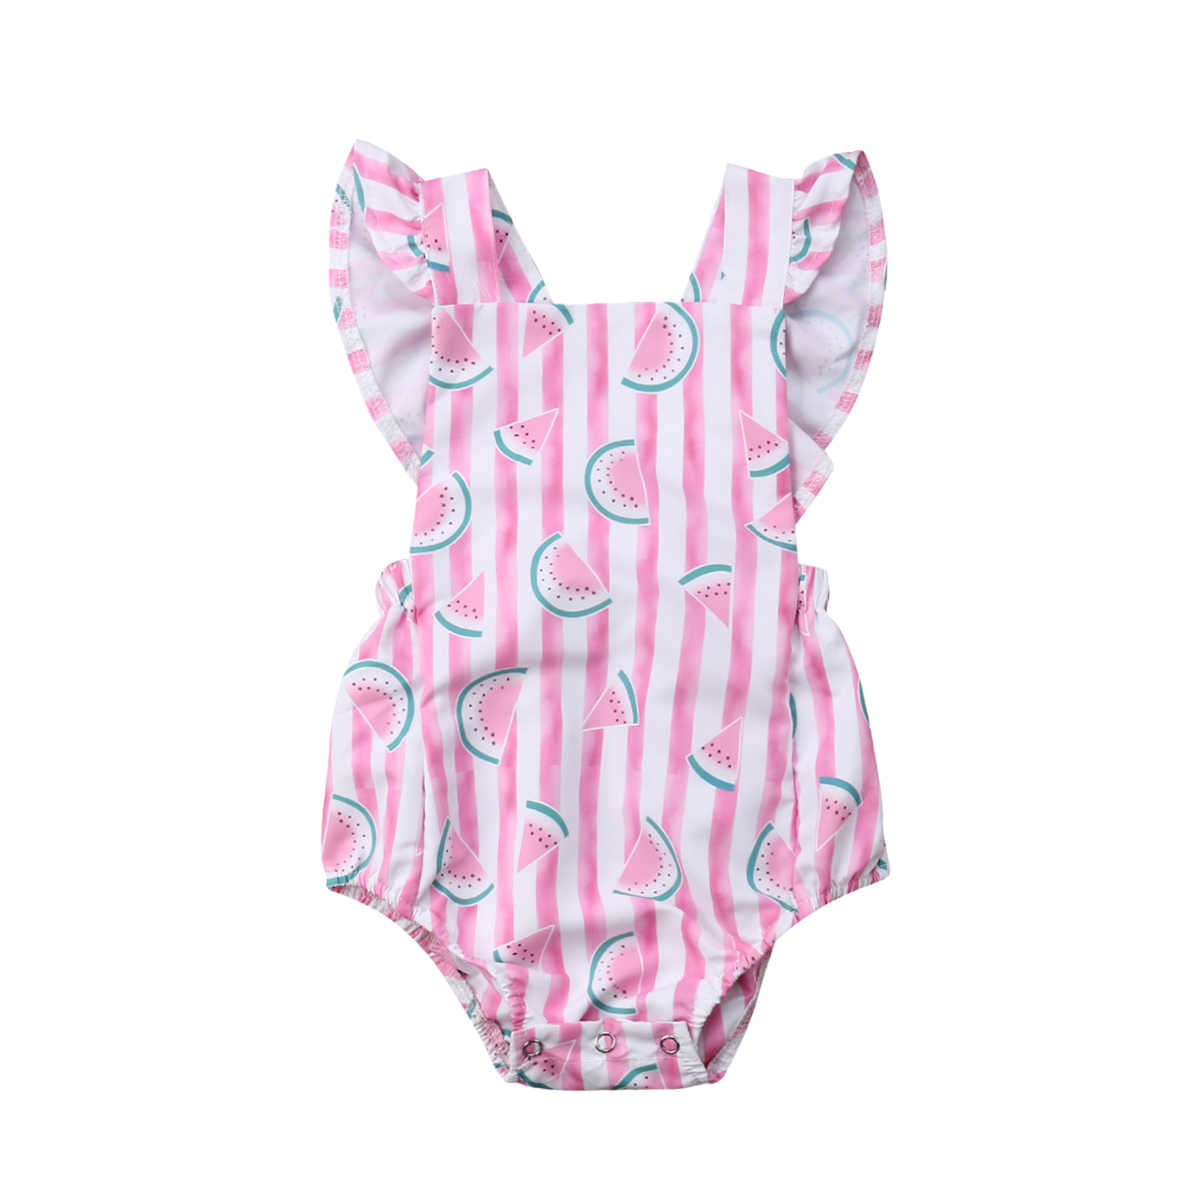 4f2a8feae053 Summer Toddler Newborn Baby Girl Clothes Sleeveless Infant Girl Jumpsuit  Playsuit Ruffles Sleeve Backlesss Watermelon Clothes